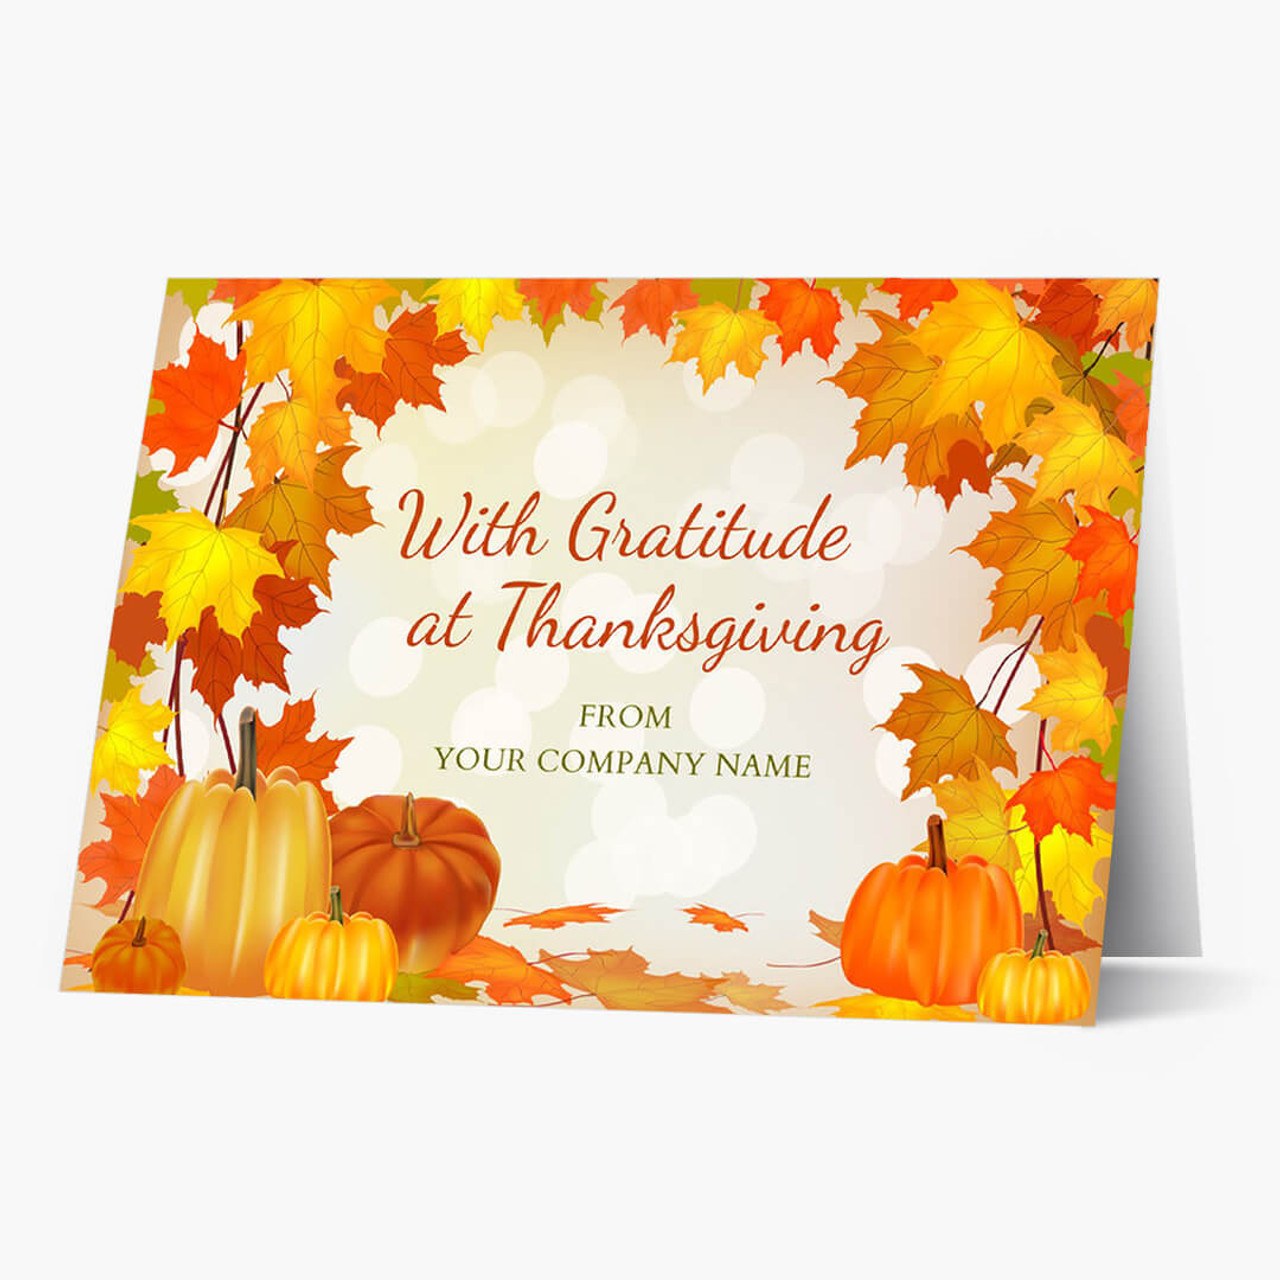 Gratitude At Thanksgiving Card